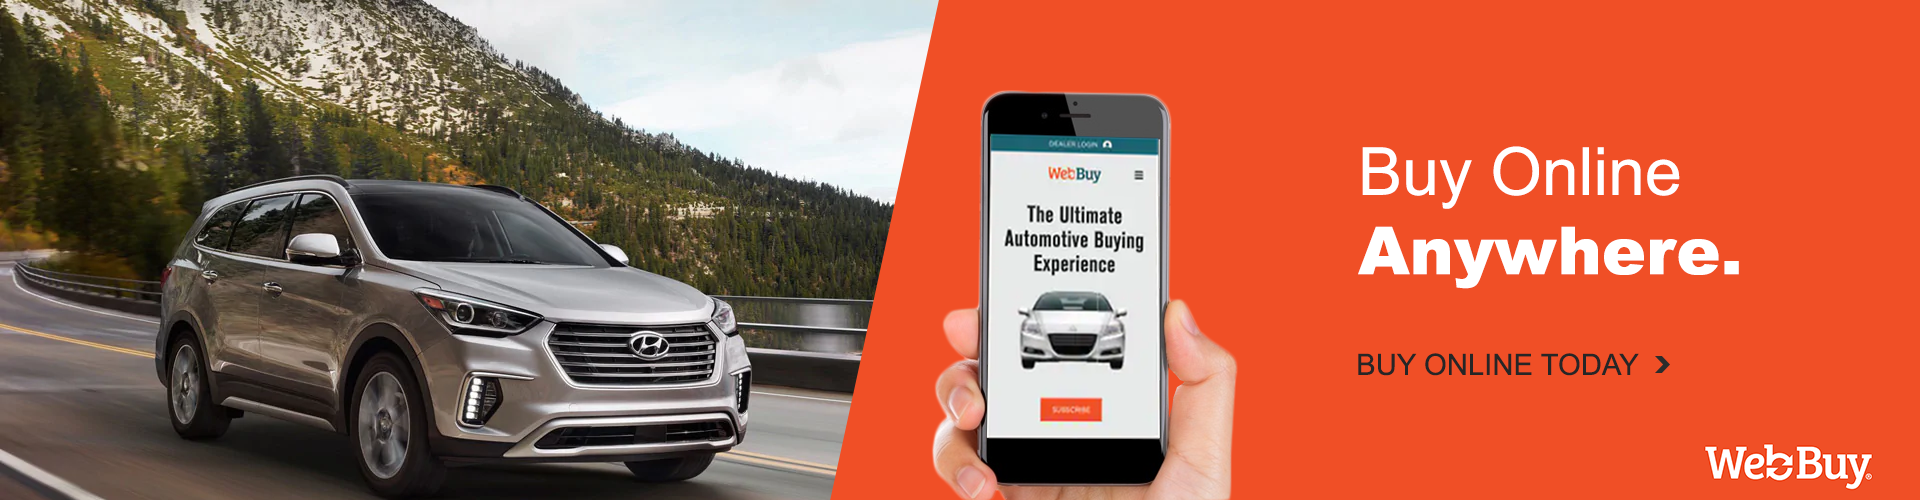 The Taylor Automotive Family Buy Online